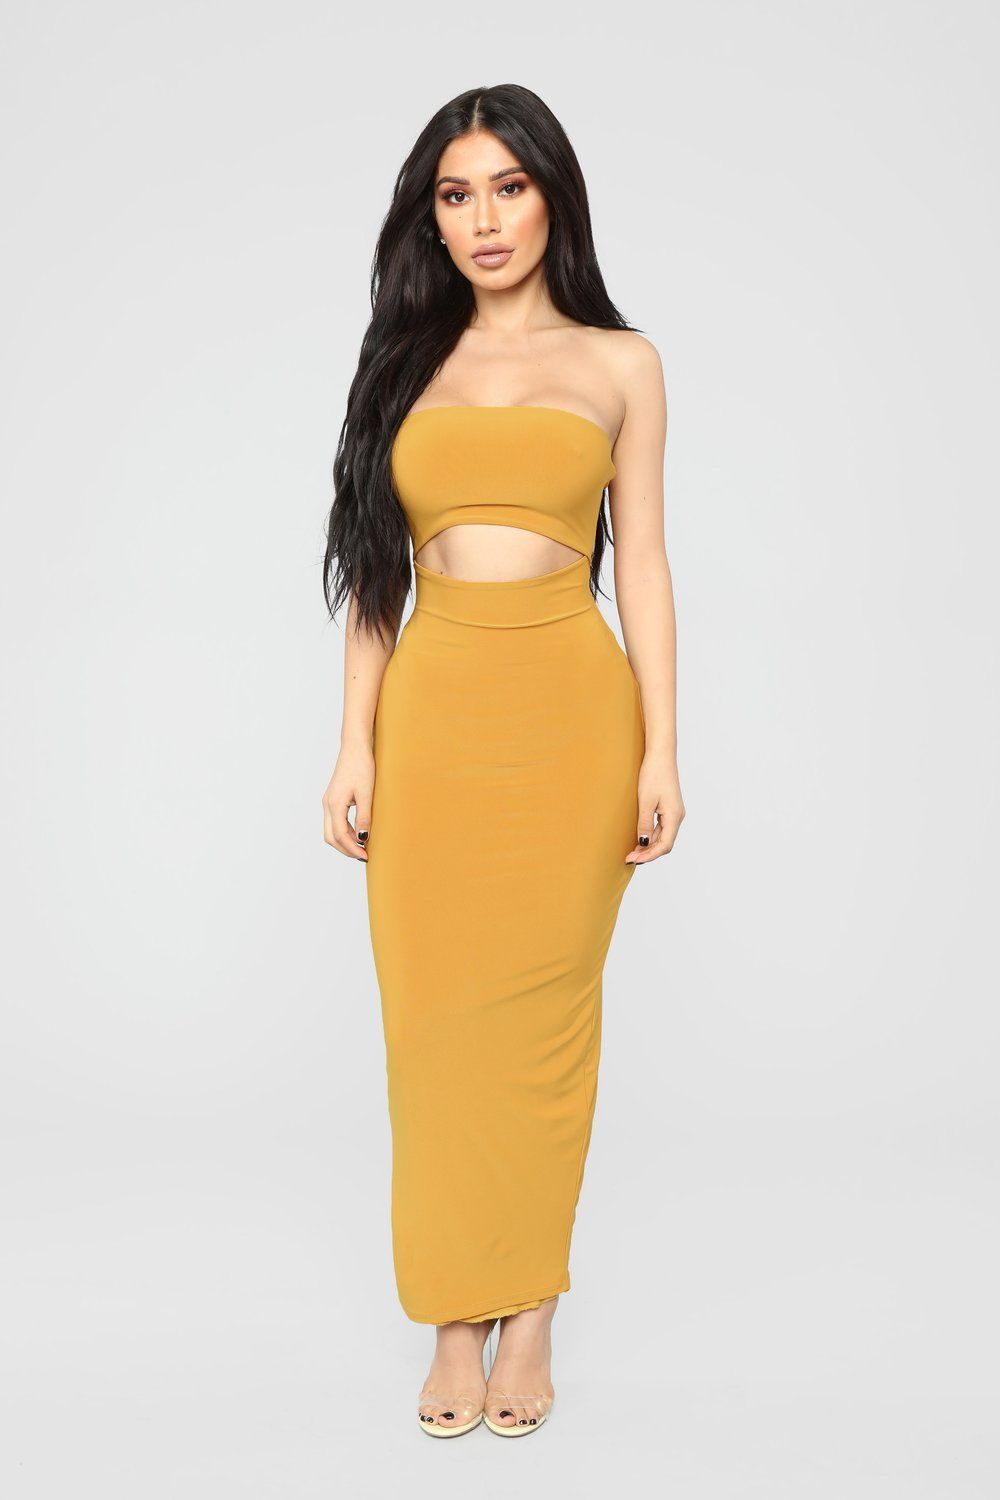 ea5dc842b0c Open To It Midi Dress - Mustard Dress Cuts, Things To Buy, Mustard,